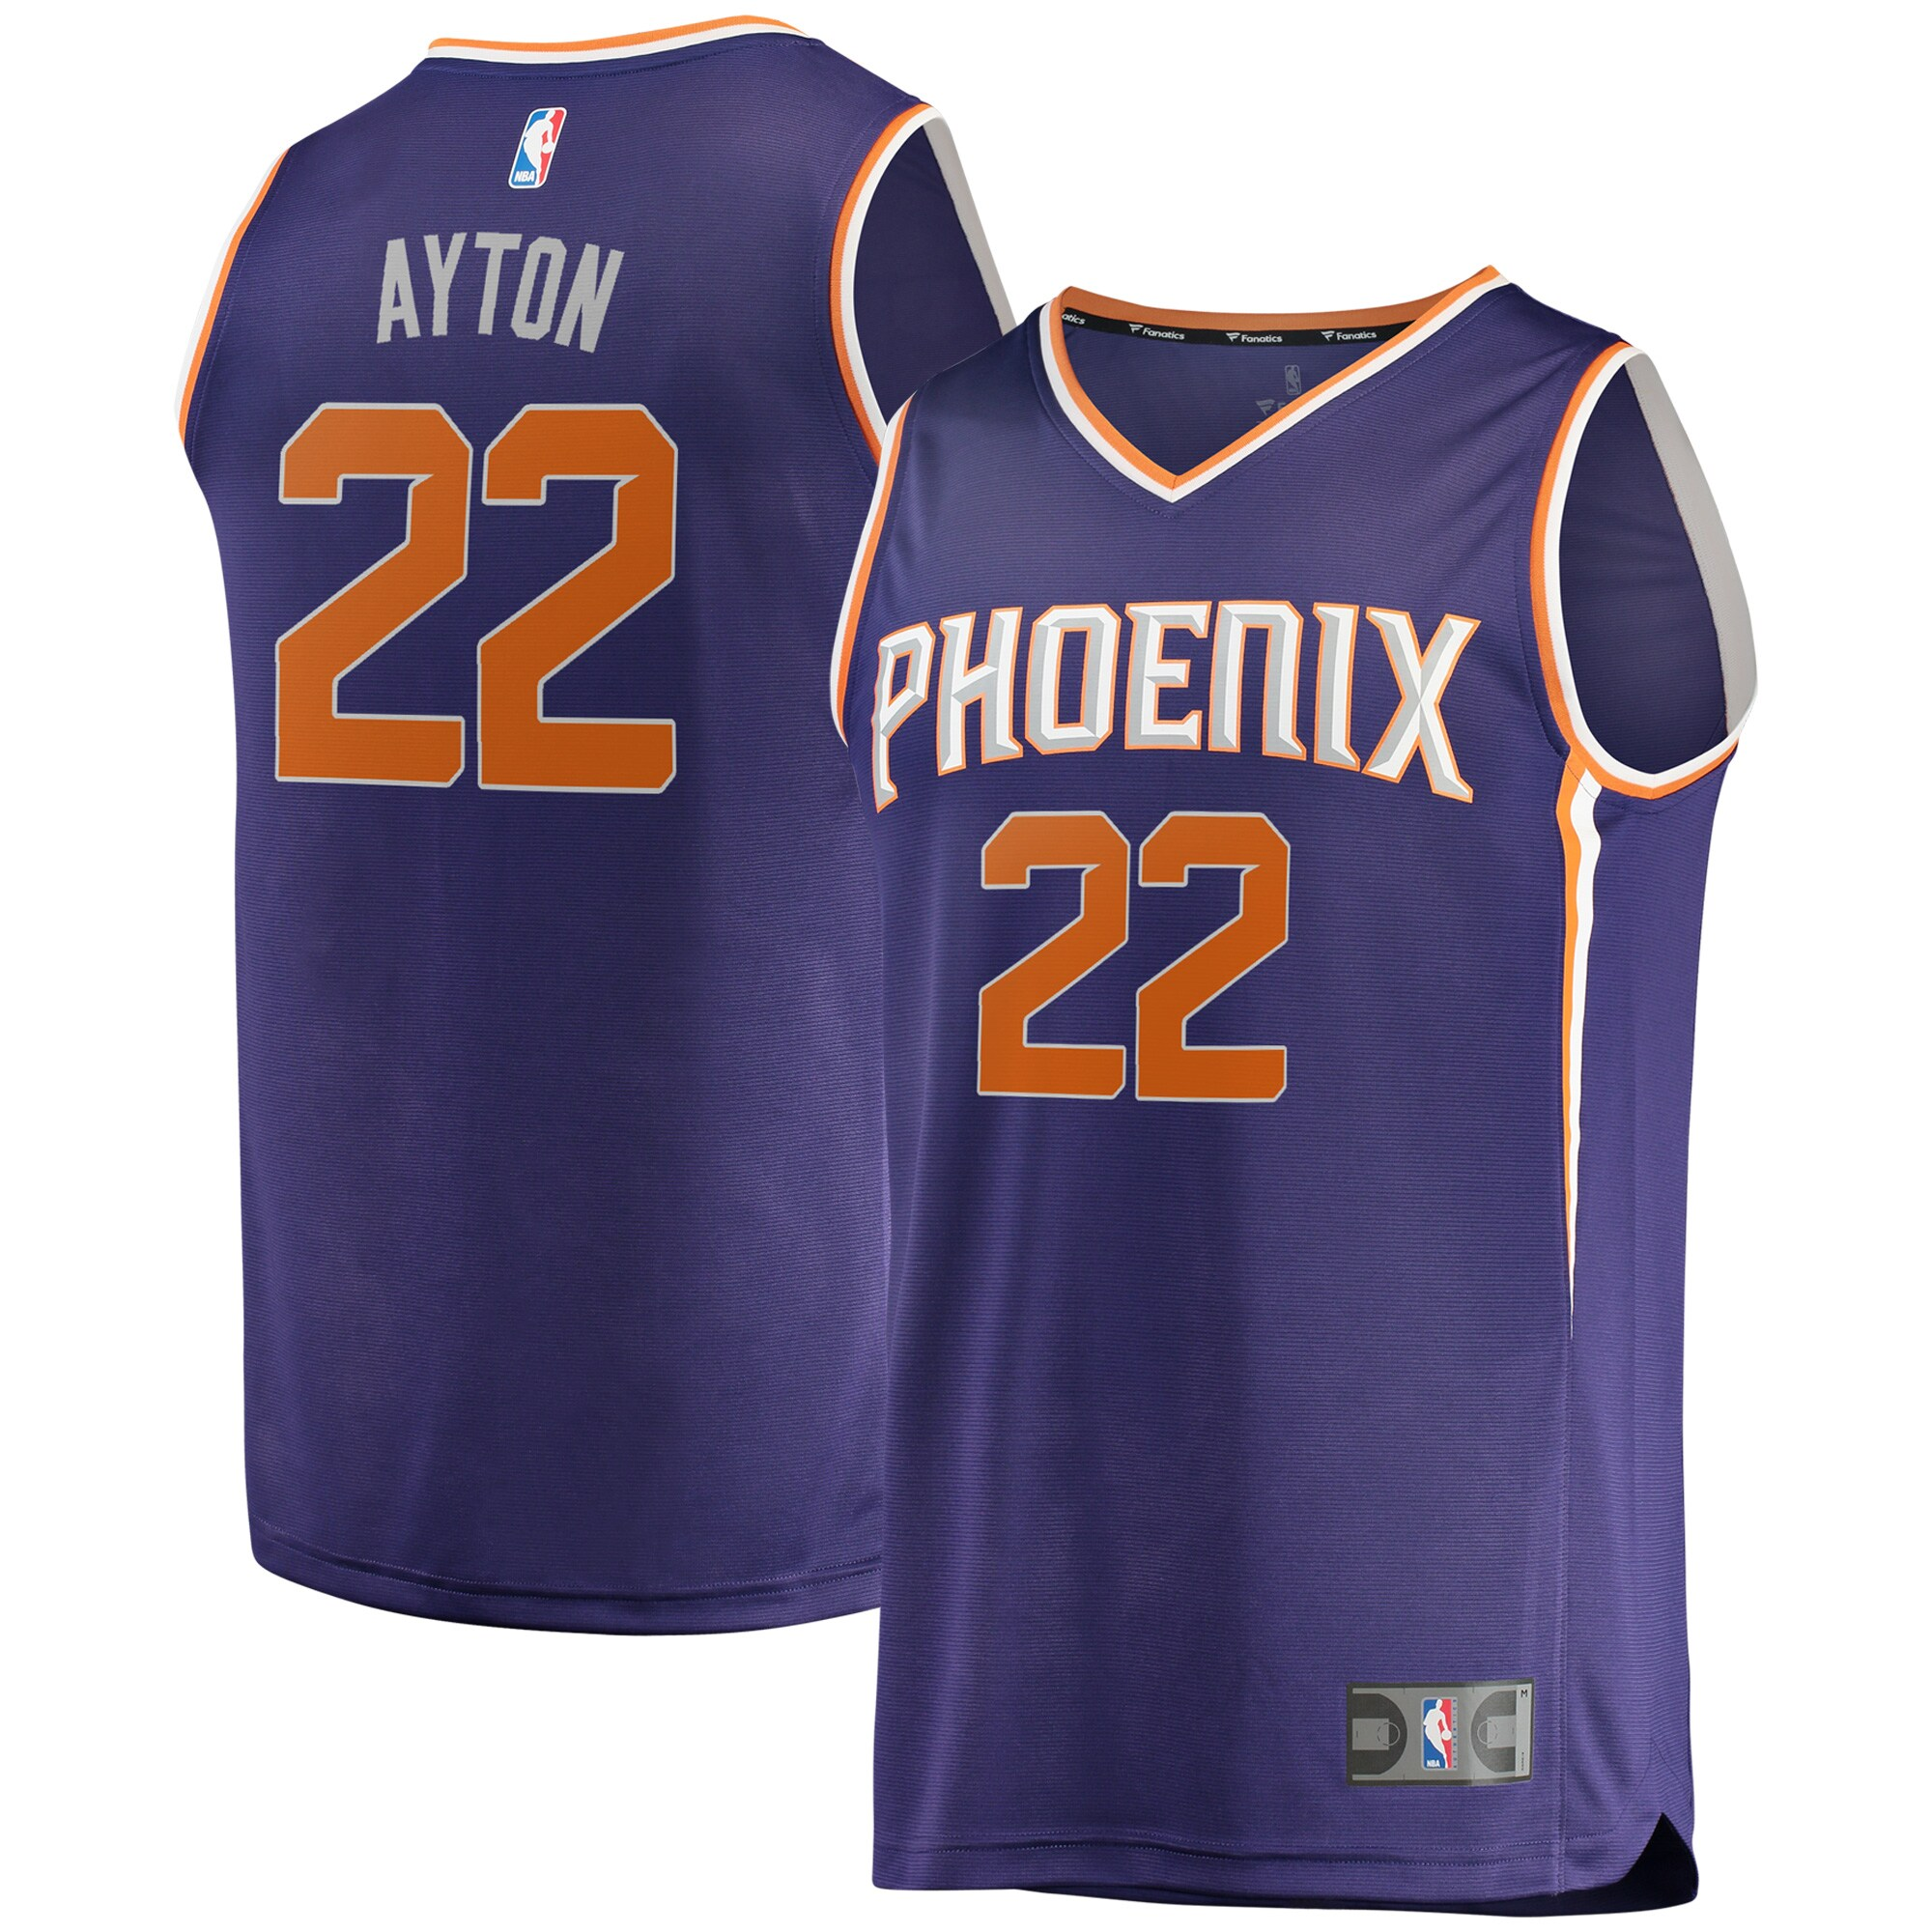 DeAndre Ayton Phoenix Suns Fanatics Branded Fast Break Replica Jersey - Icon Edition - Purple